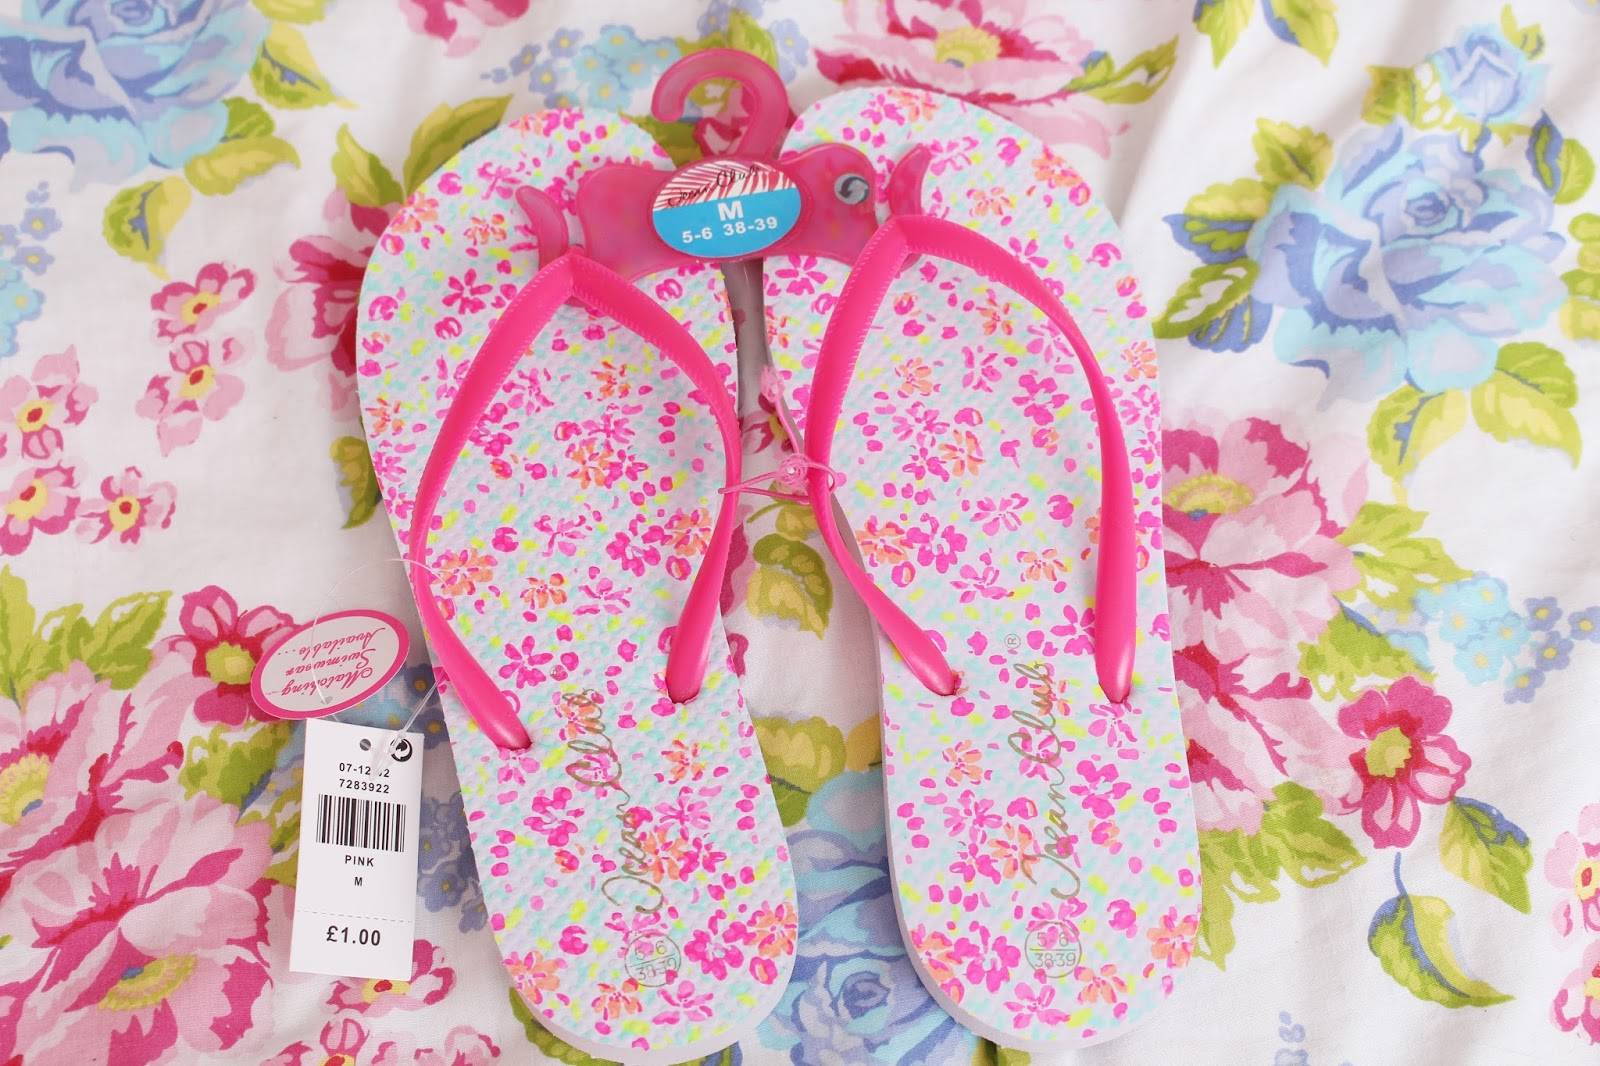 Summer Primark Haul April 2014 Floral Flip Flops